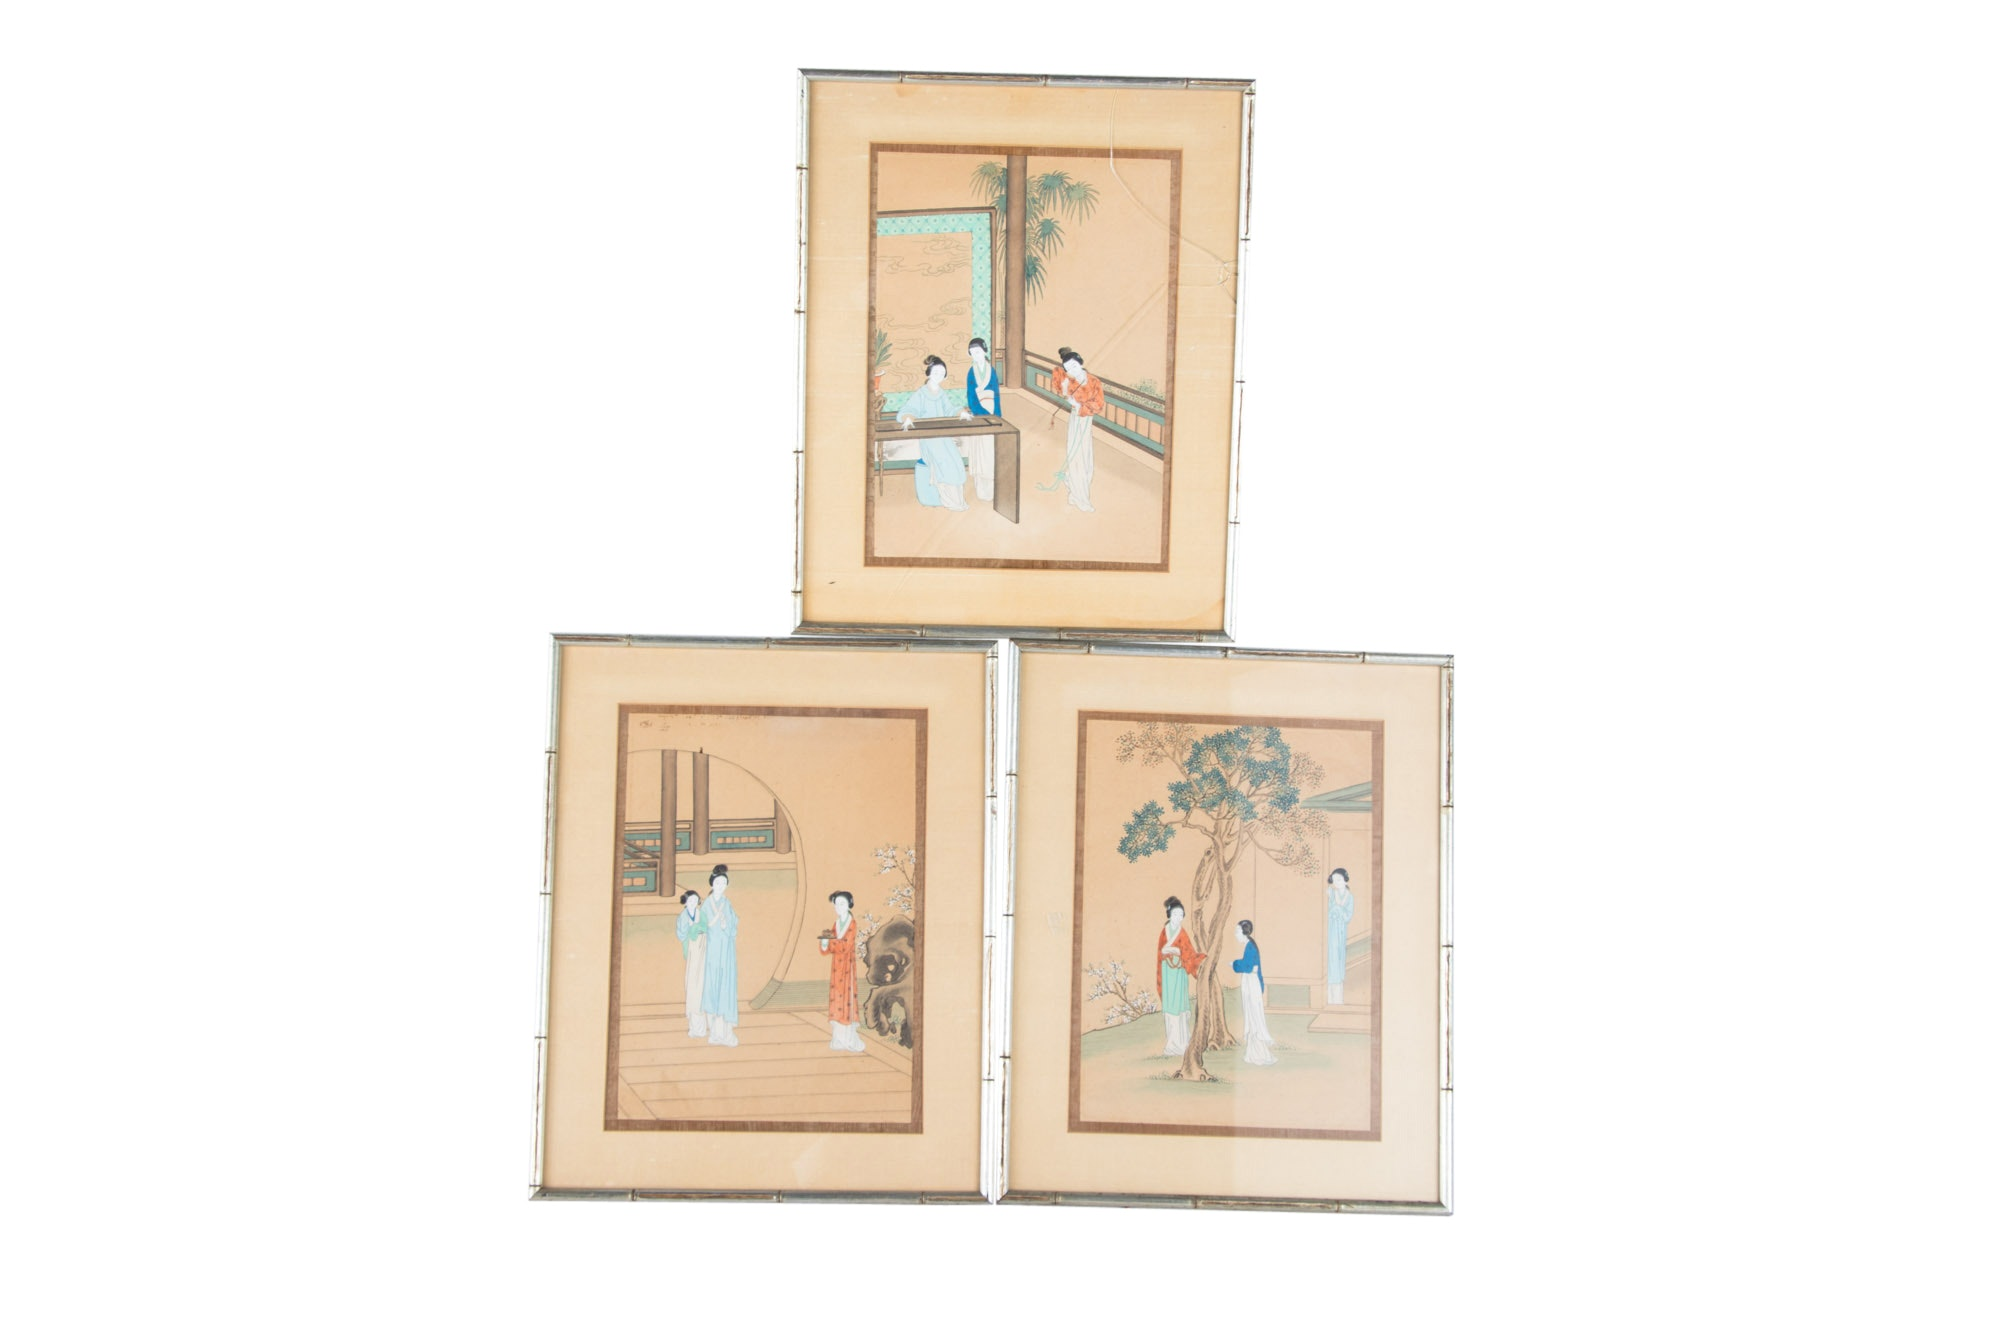 Antique 19th Century Chinese Hand-Colored Woodblock Prints